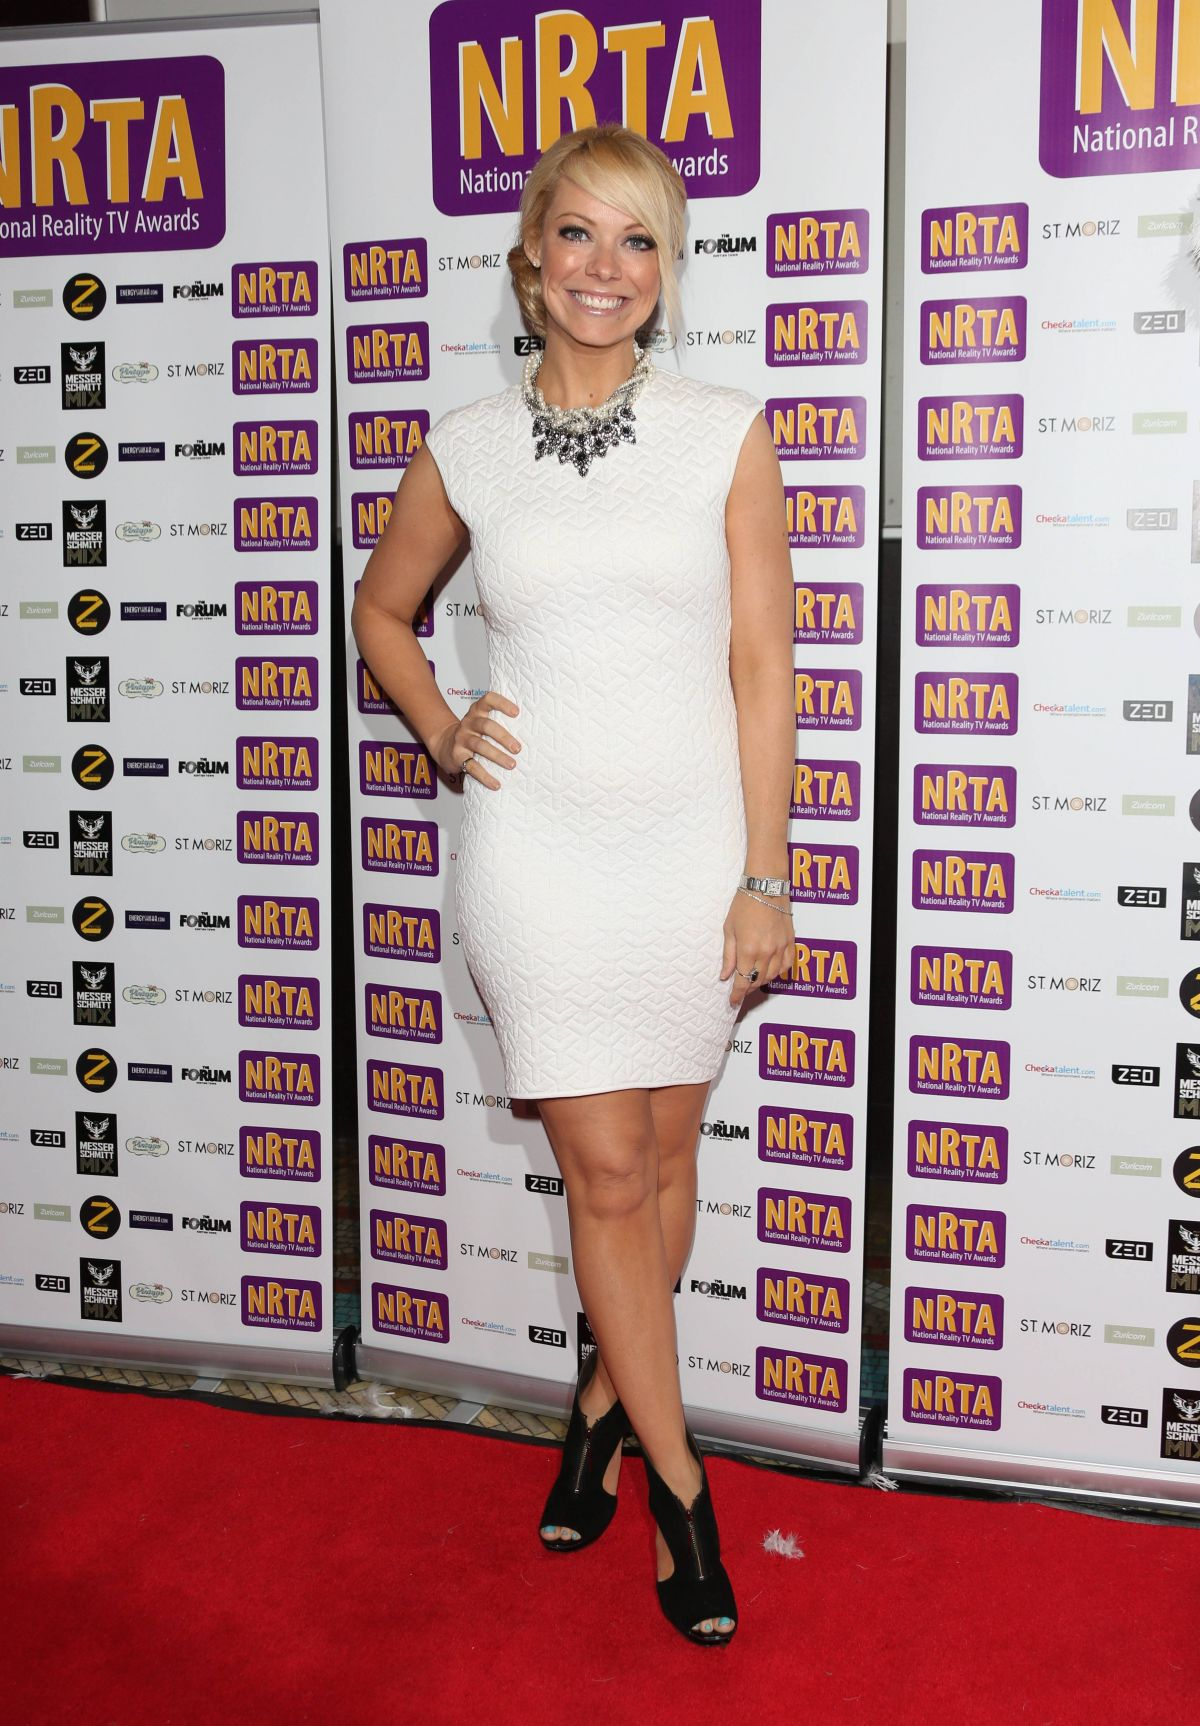 Liz McClarnon At National Reality TV Awards At The HMV Forum In London